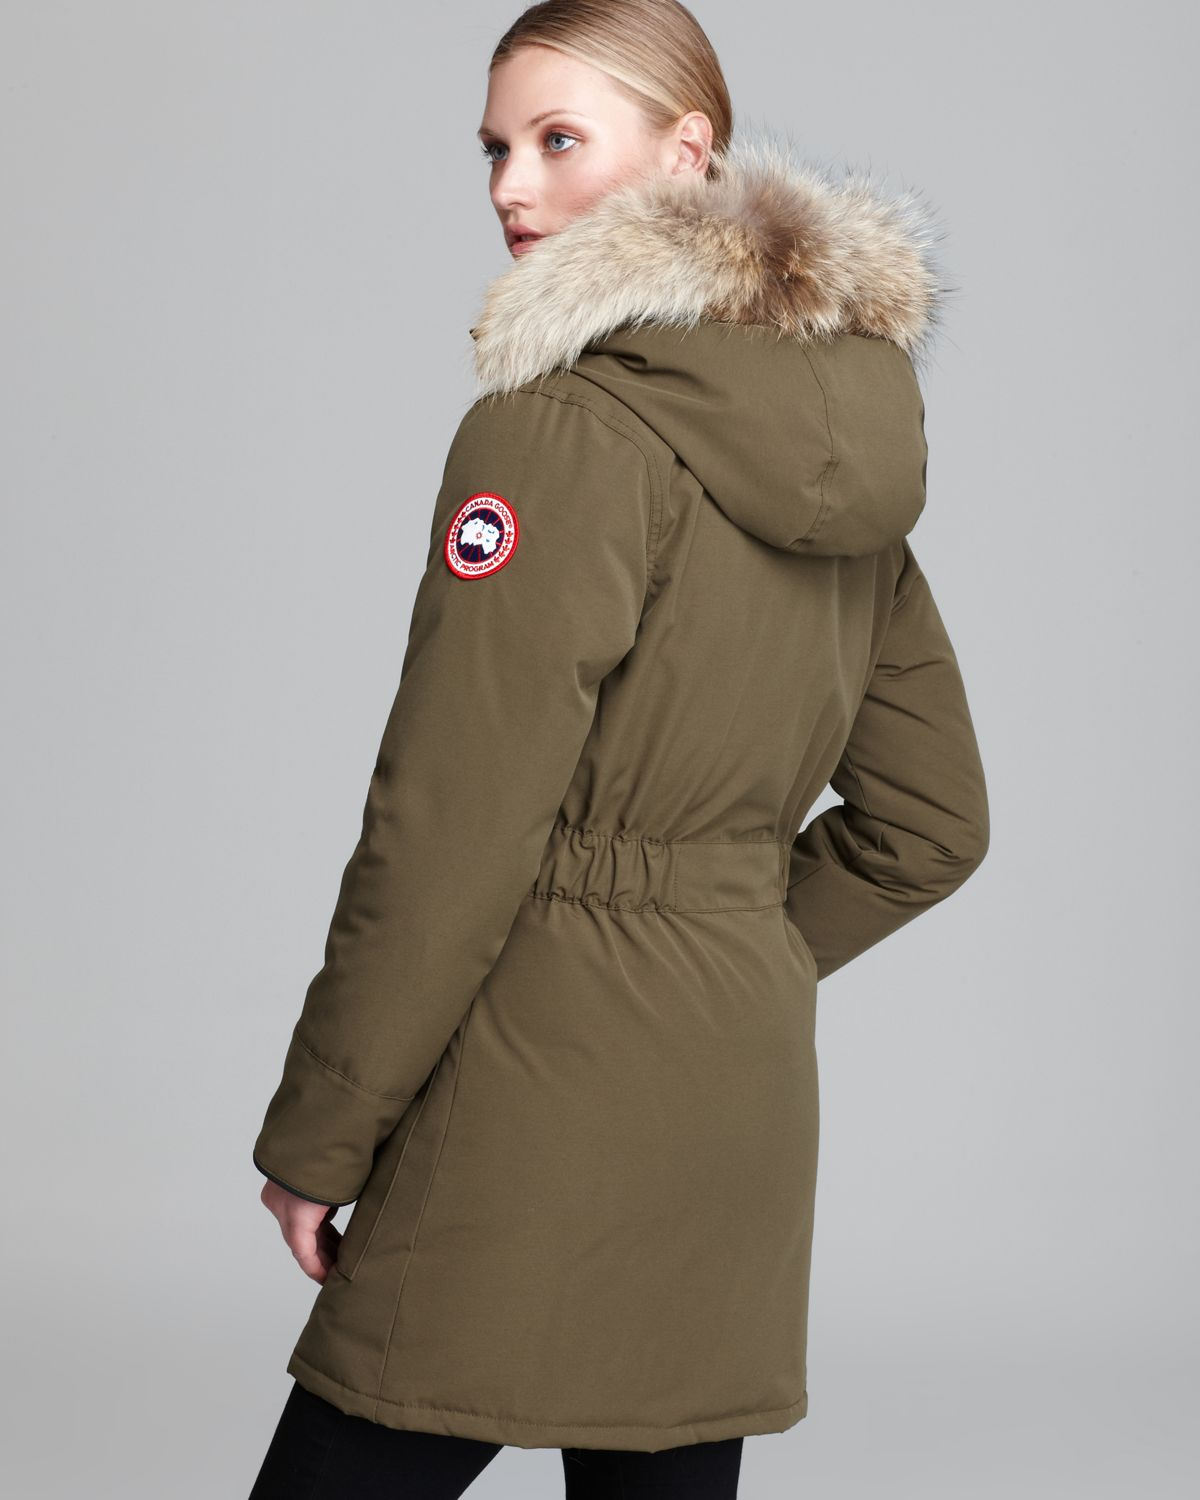 Canada Goose hats sale price - Canada goose Trillium Parka in Green (Military Green) | Lyst